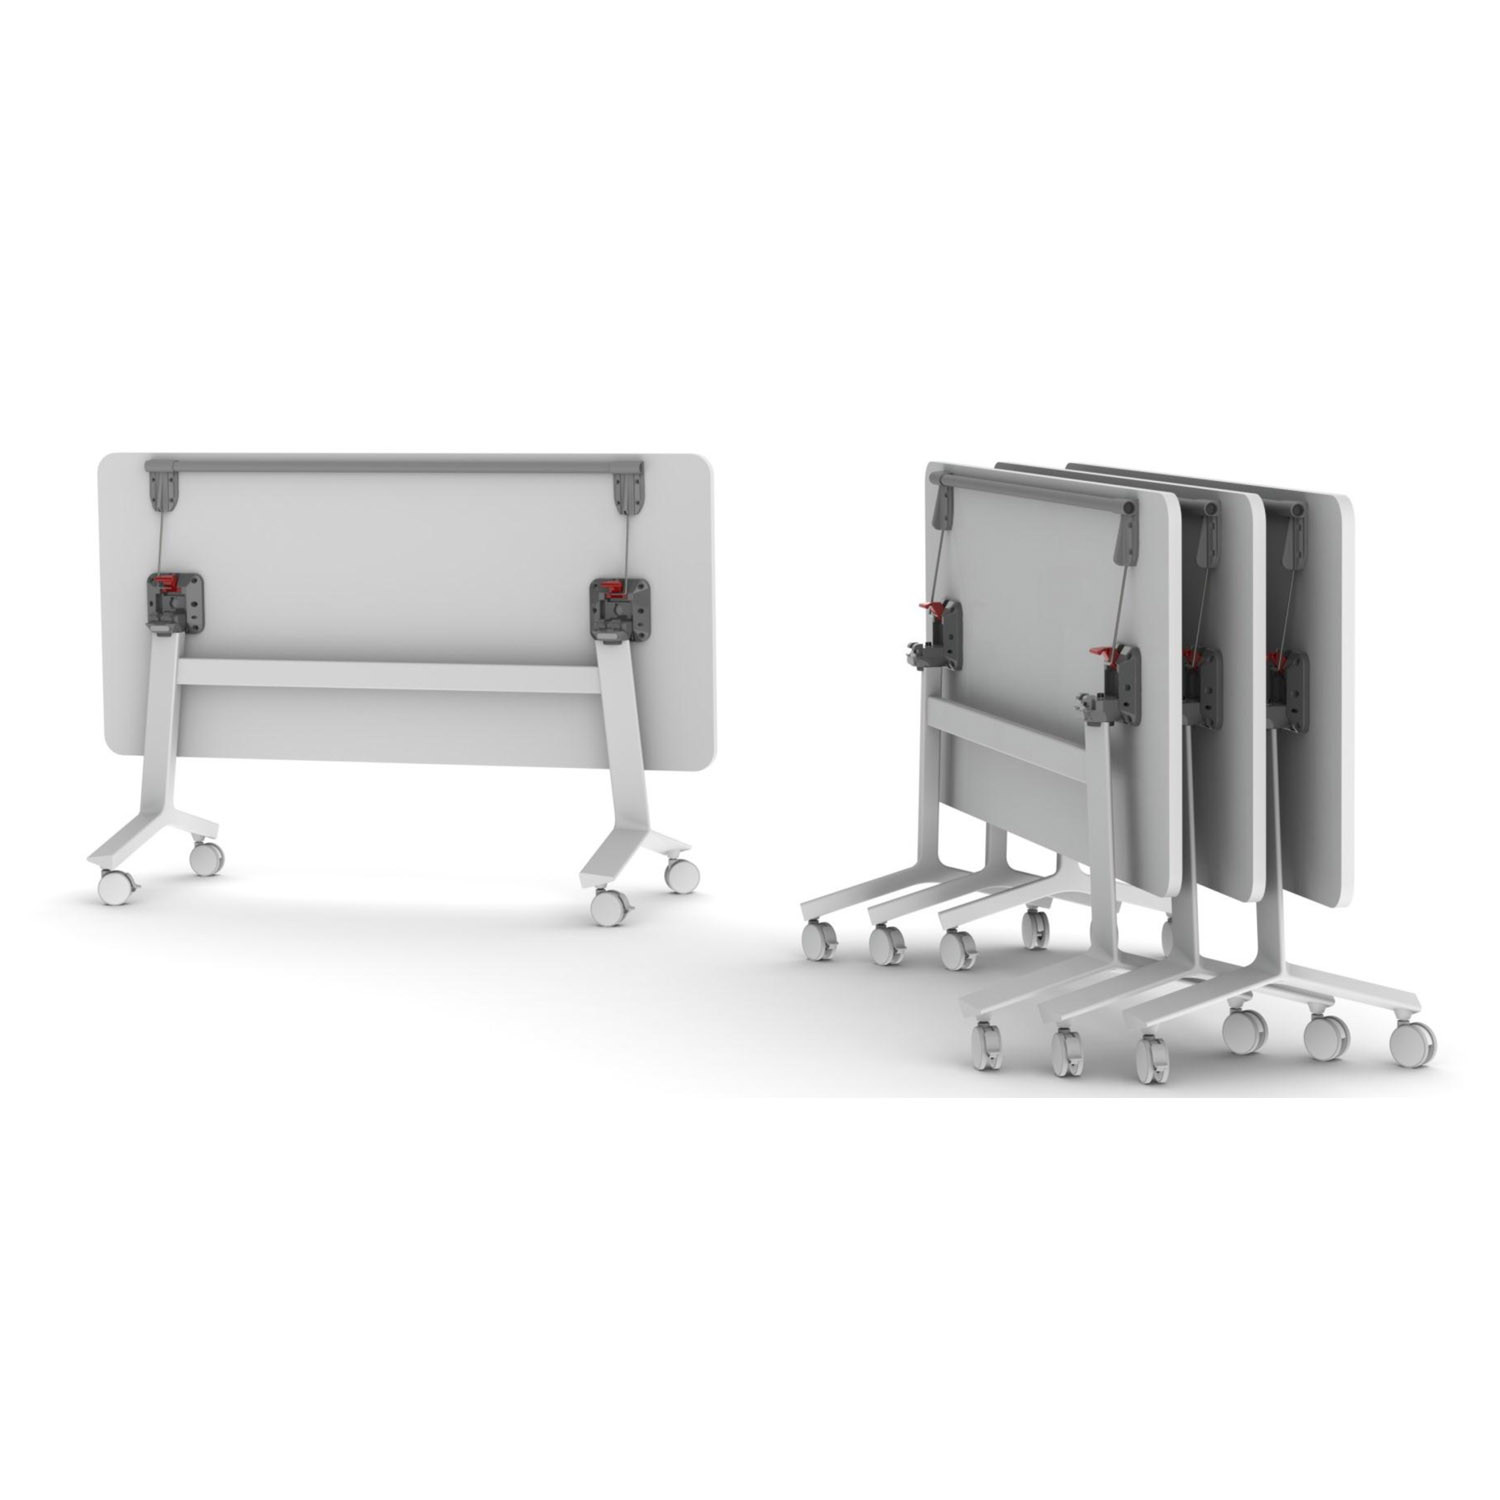 Blade Folding Tables